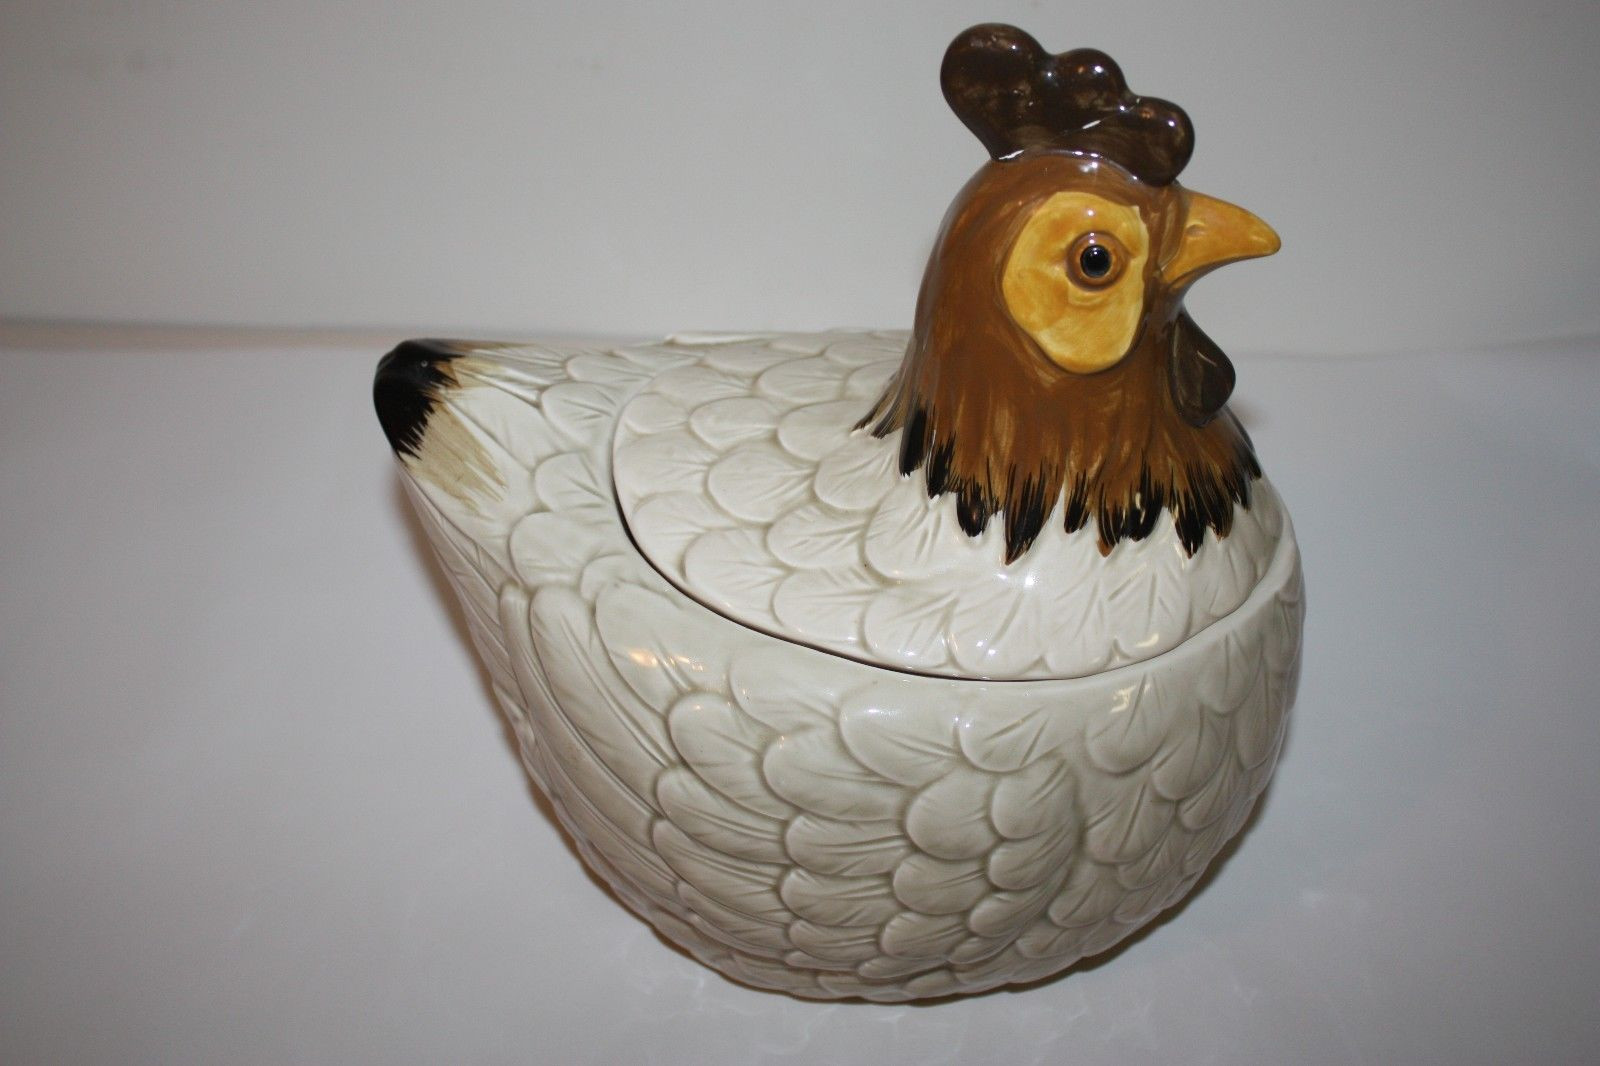 Otagiri Japan Bud Vase Of Vintage Otagiri 1982 Rooster Hen Chicken Cookie Jar Ceramic Hand Throughout Vintage Otagiri 1982 Rooster Hen Chicken Cookie Jar Ceramic Hand Painted 8 Inch 1 Of 12 Vintage Otagiri